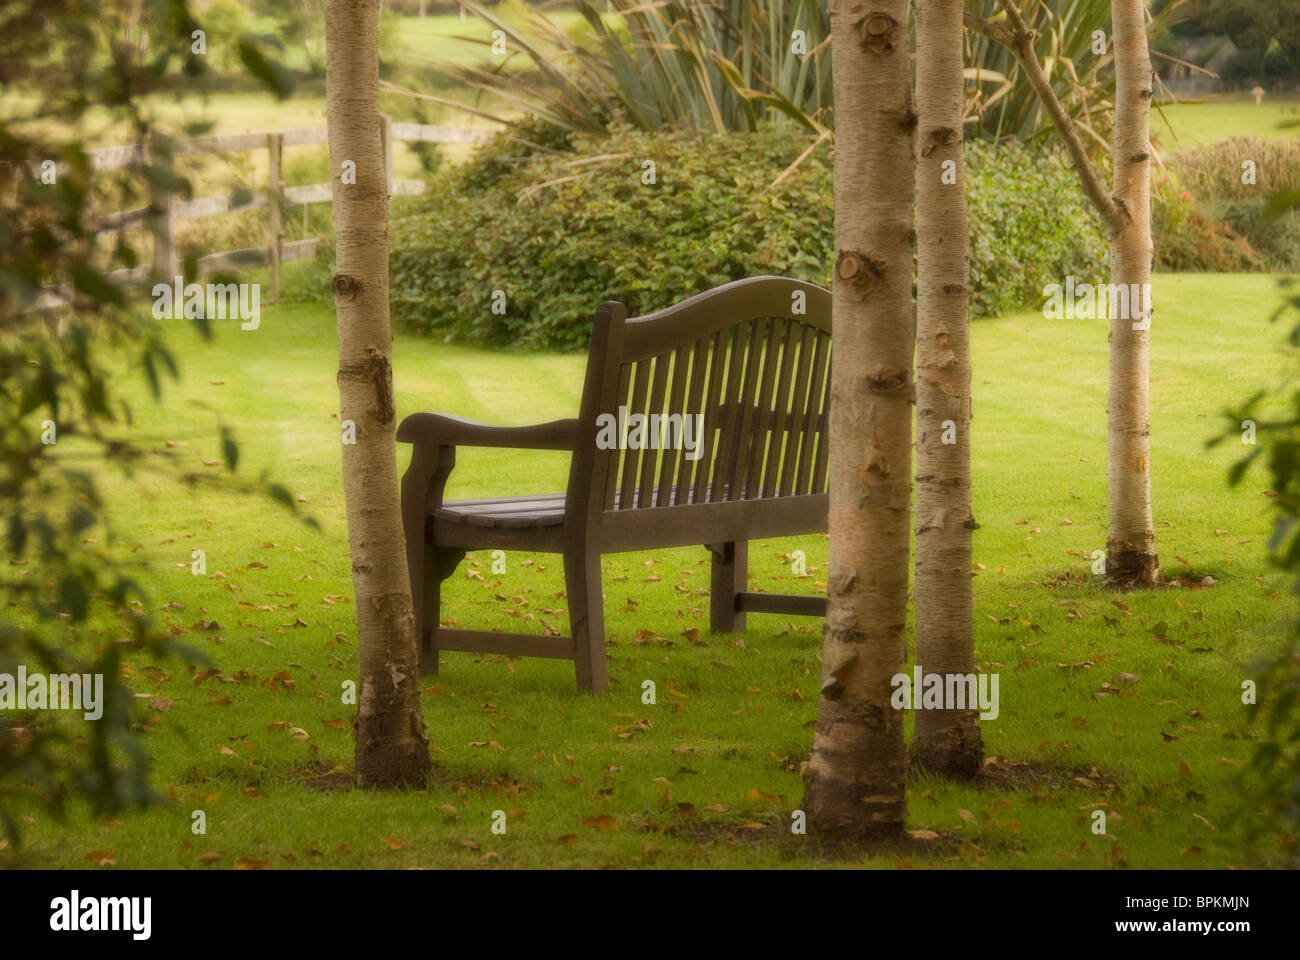 Wooden bench sitting among trees in gardens of old hotel, Ballyvaughan, County Clare, Ireland - Stock Image